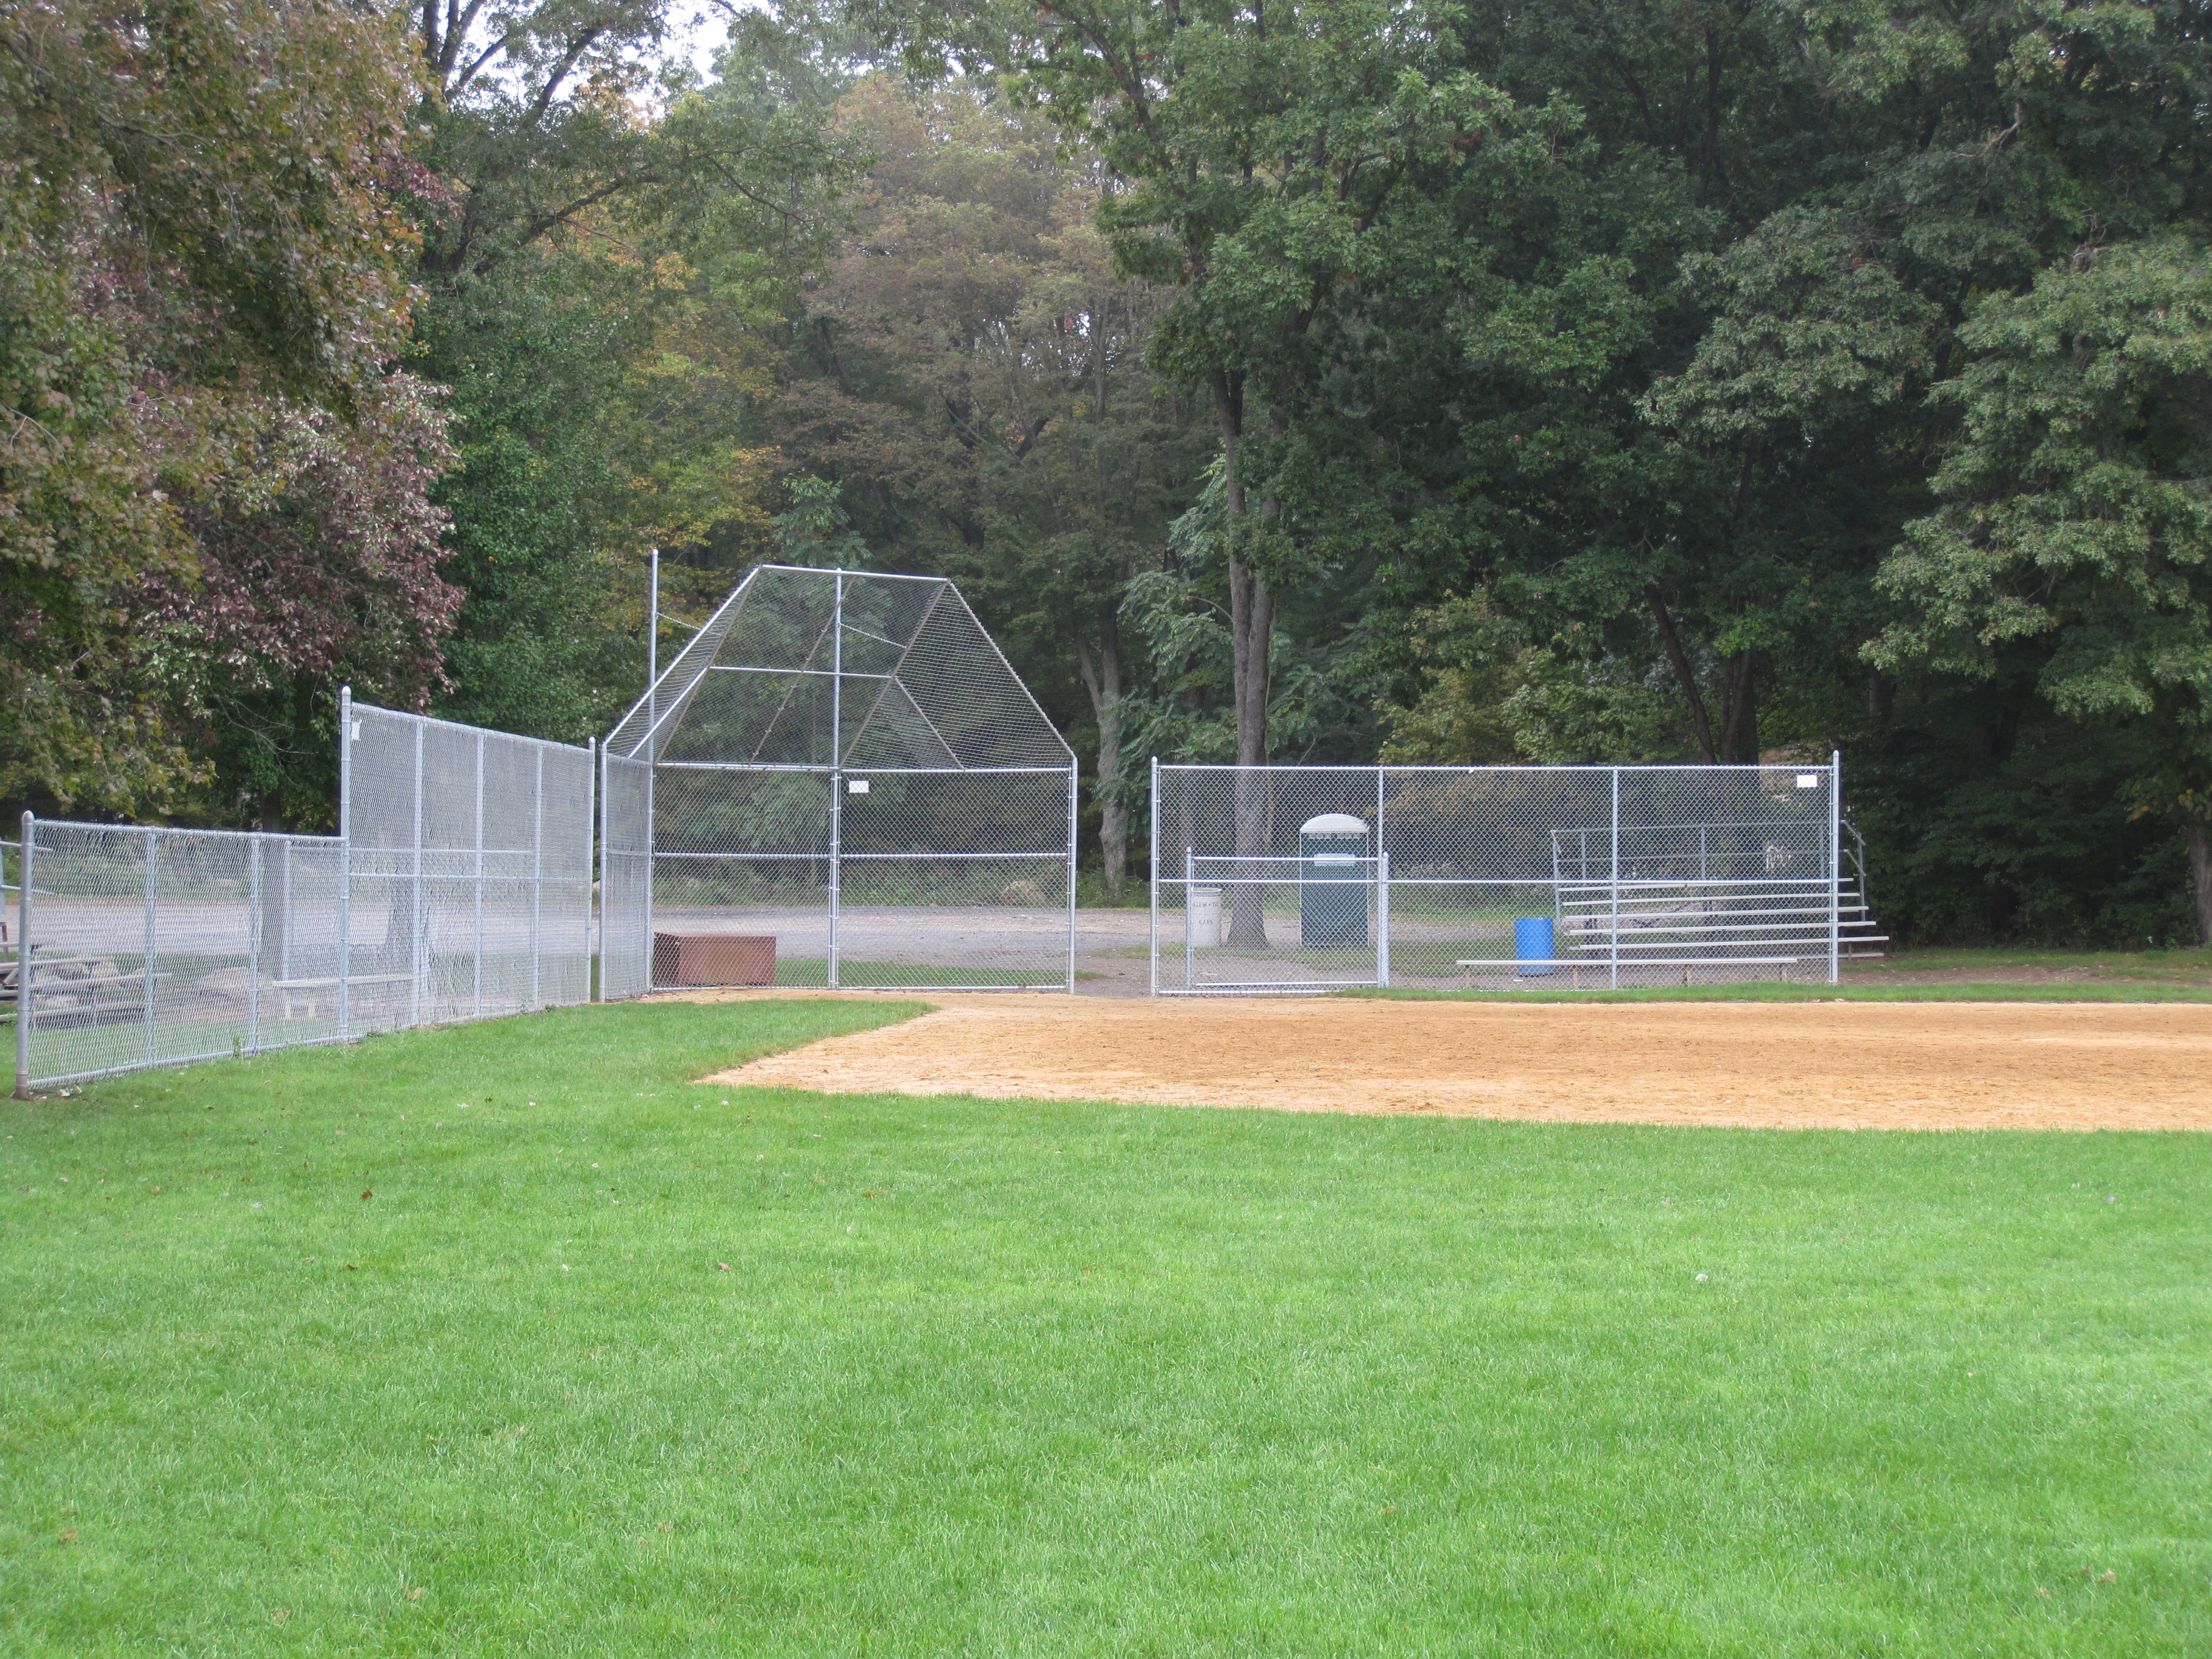 Softball Field at Neil Gylling Memorial Park